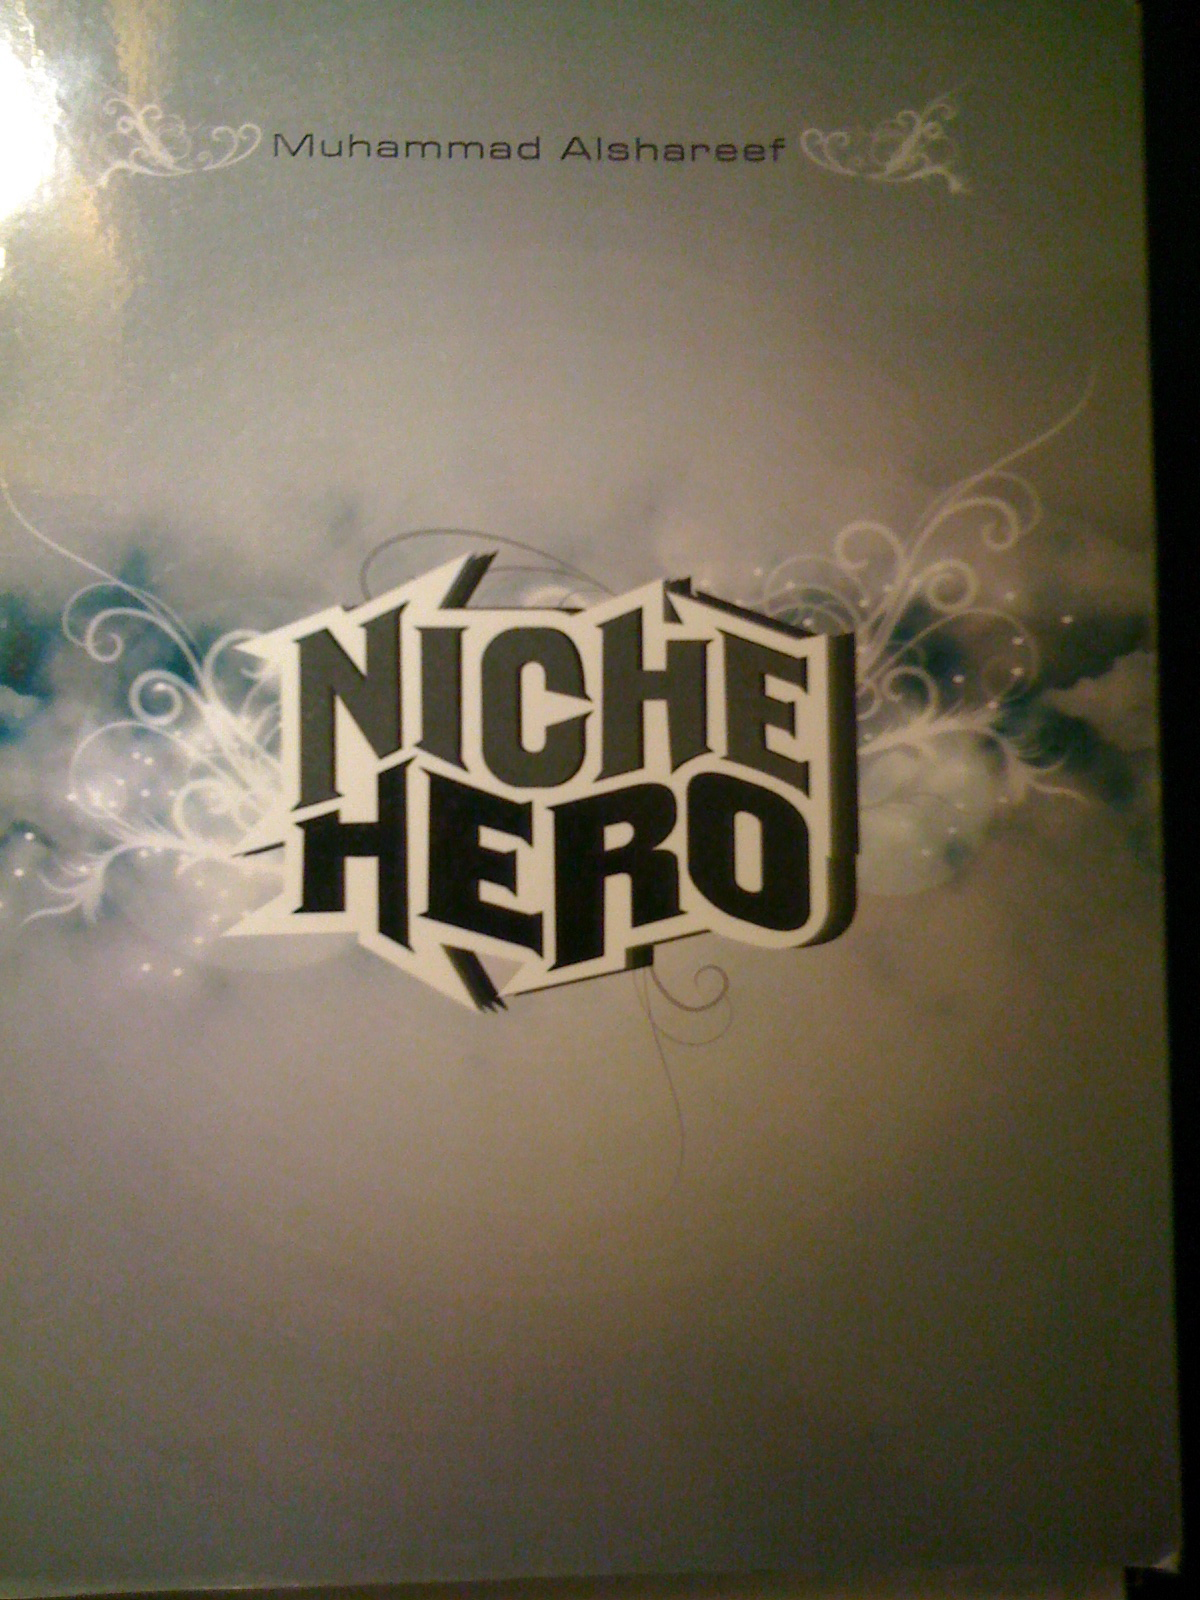 NicheHero Day 4 & 5: What I Learned at NicheHero